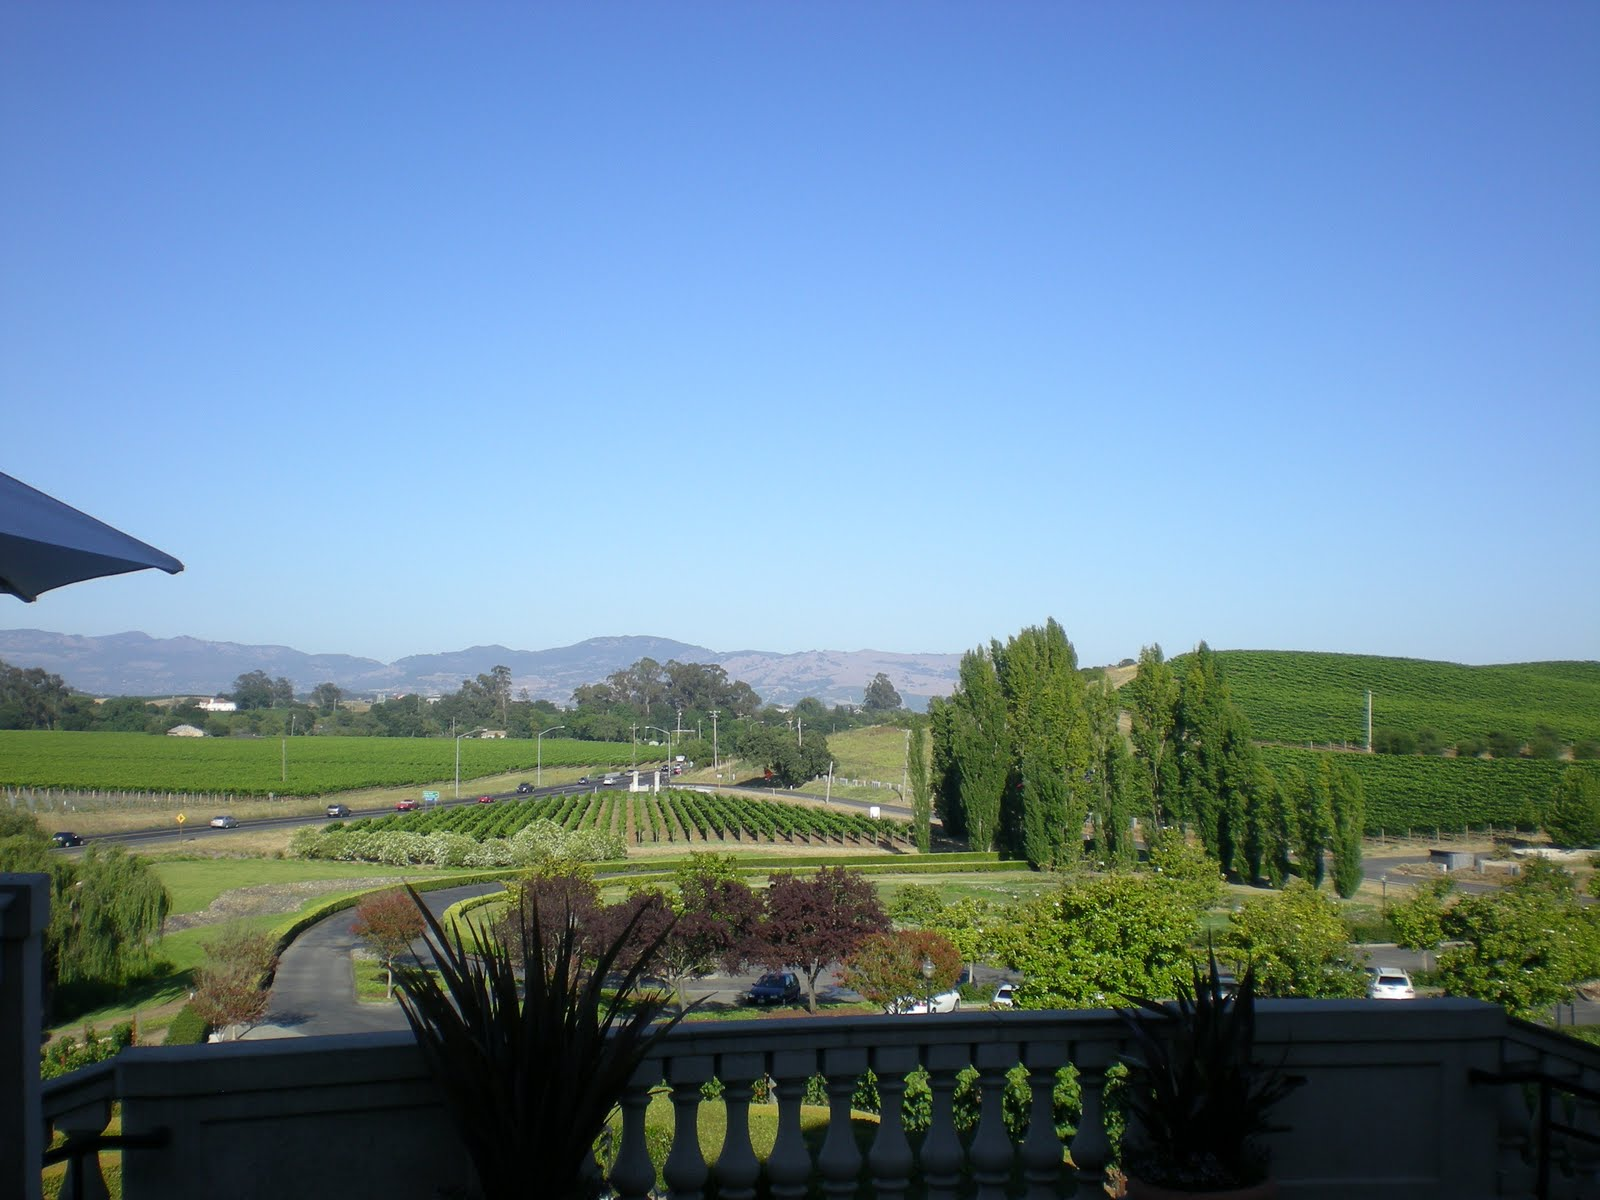 The global vacationer california road trip 4th stop for Carneros inn napa valley